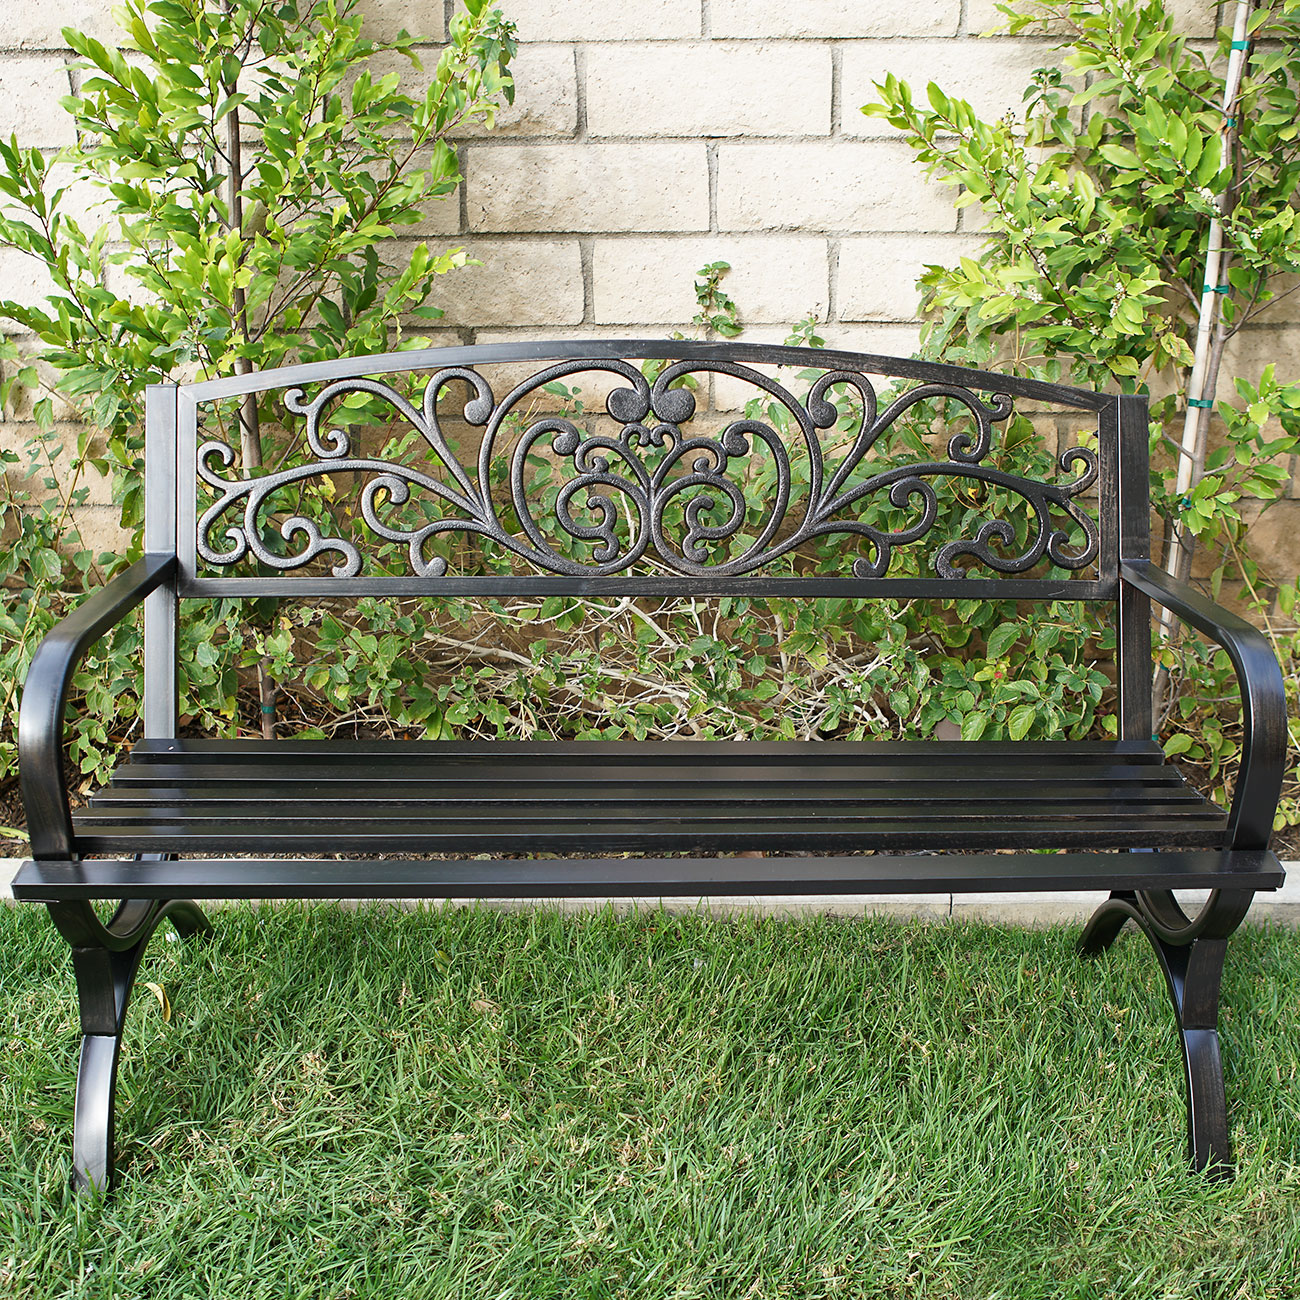 New 50 Inch Outdoor Bench Patio Metal Garden Furniture Deck Porch Seat Backyard Ebay